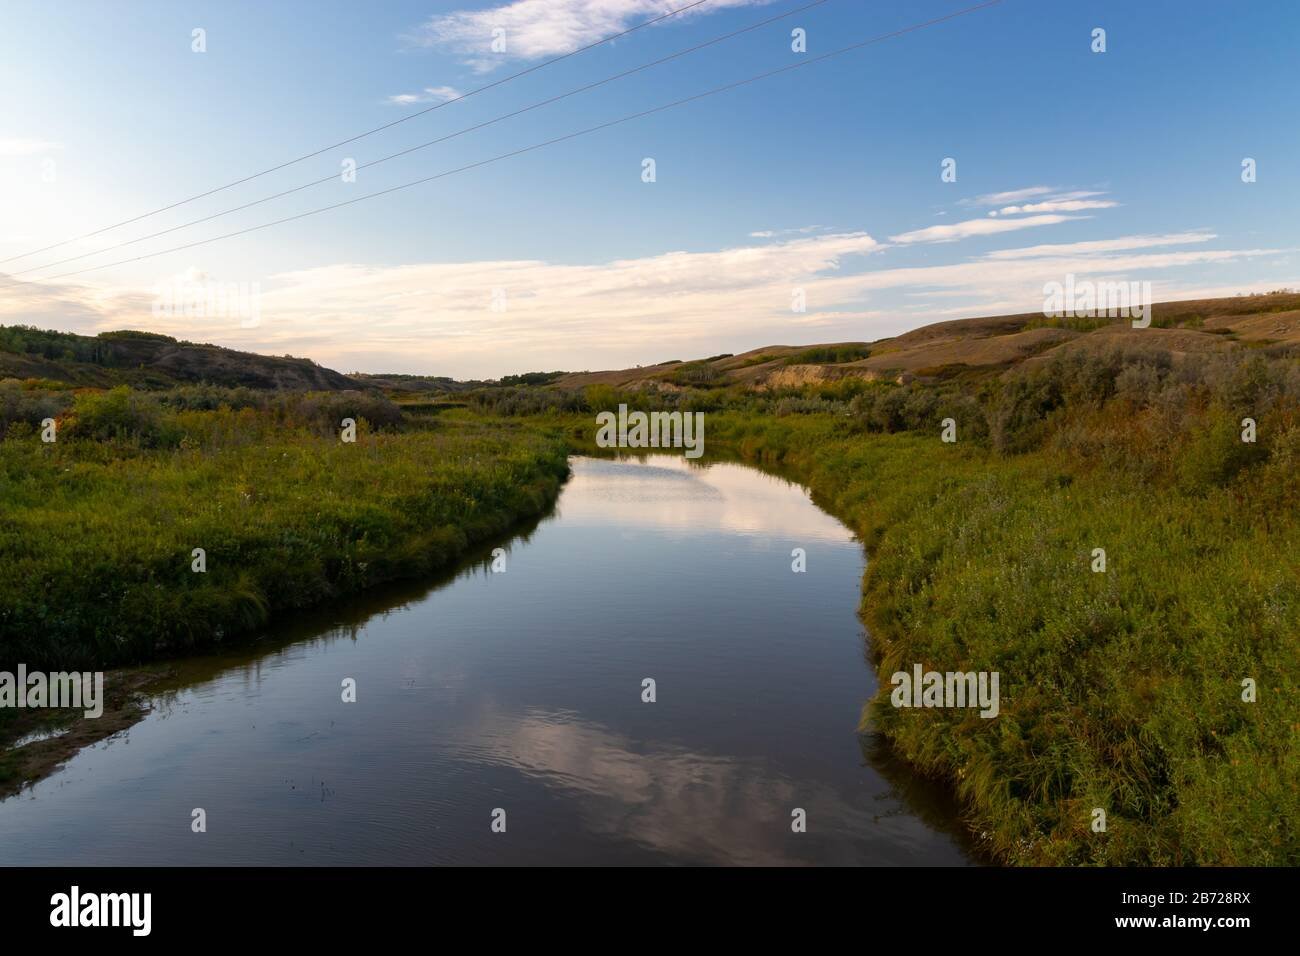 A calm and peaceful stream flowing through a valley in rural country side of the Saskatchewan Prairies in Canada with the sky reflecting in the water Stock Photo